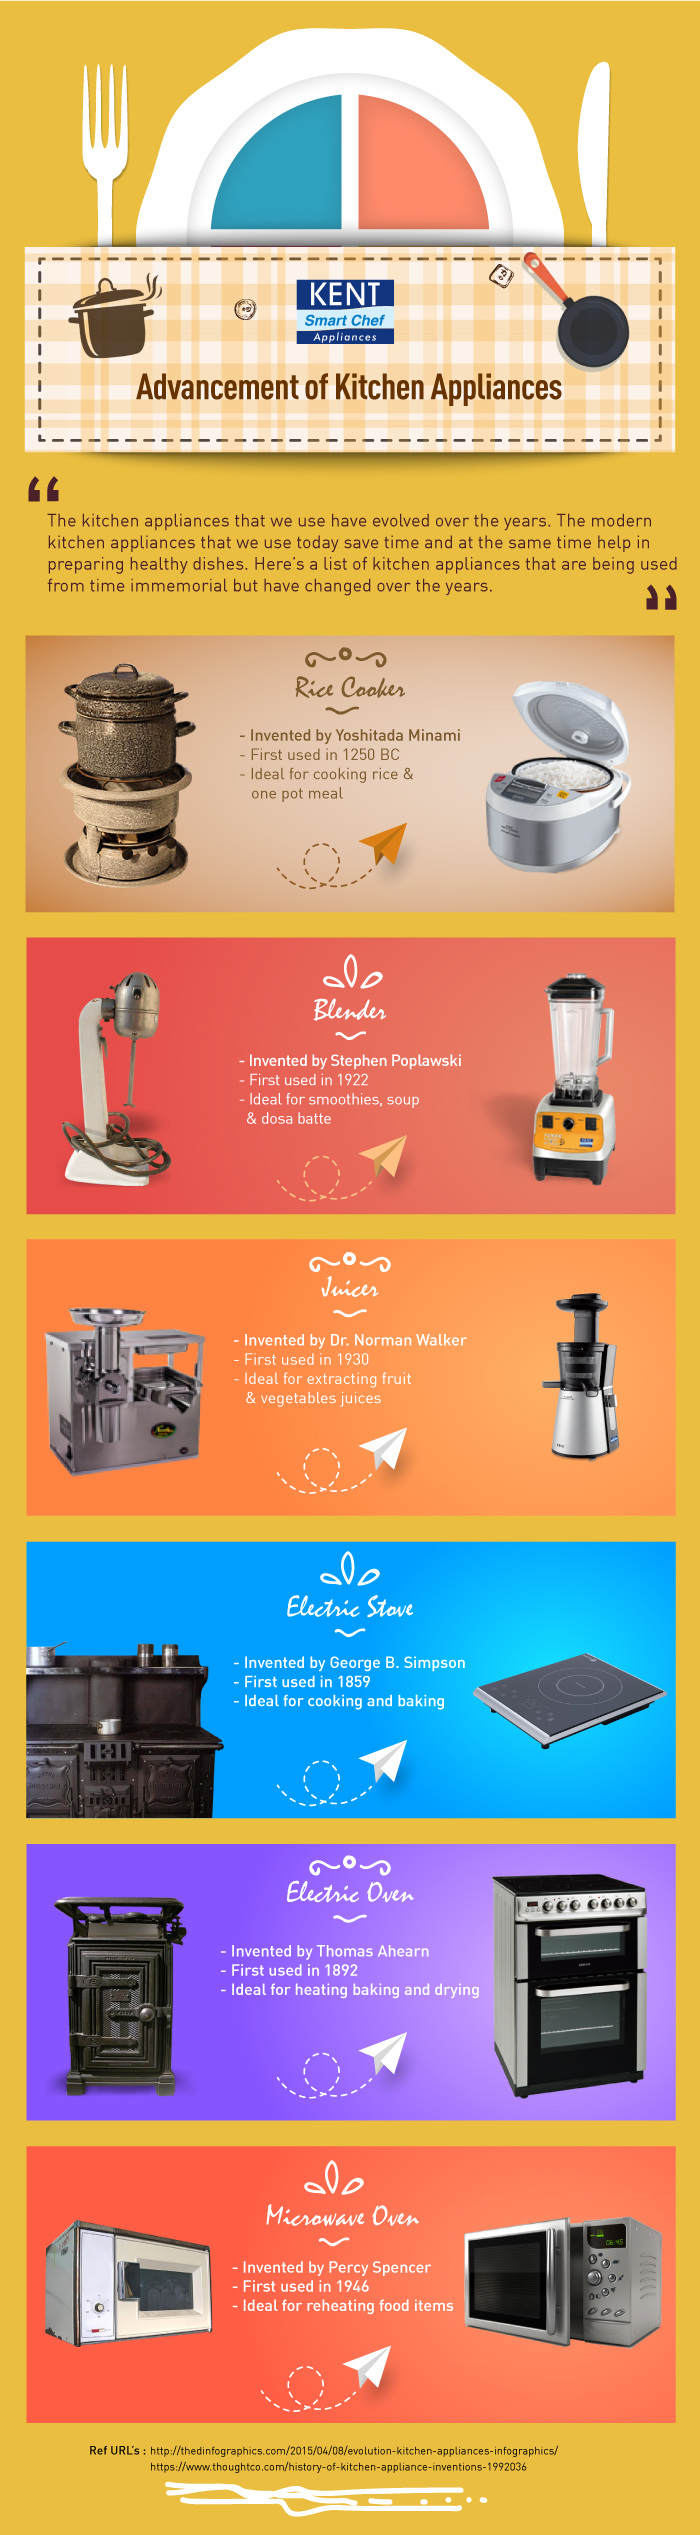 Evolution and advancement of kitchen appliances Infographic